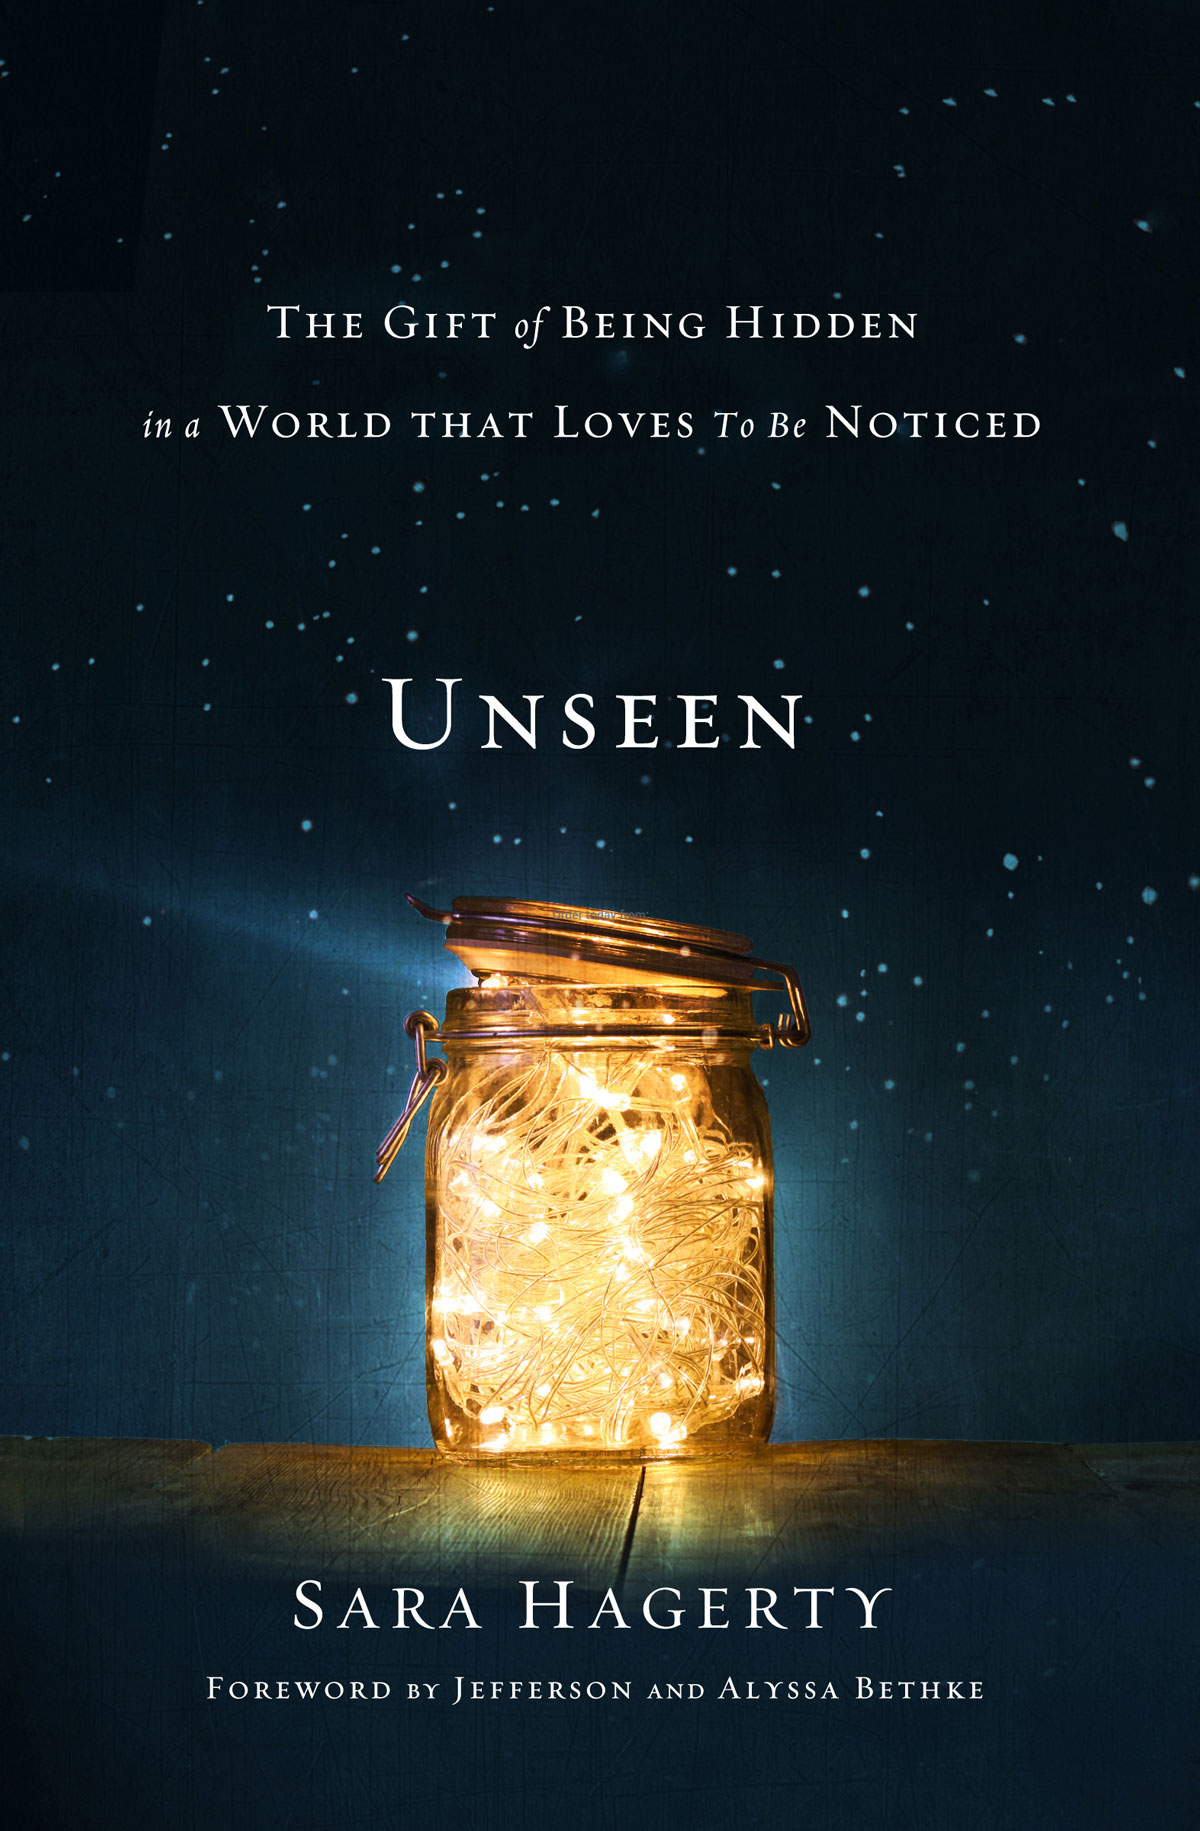 6. - UNSEENby Sara Hagerty